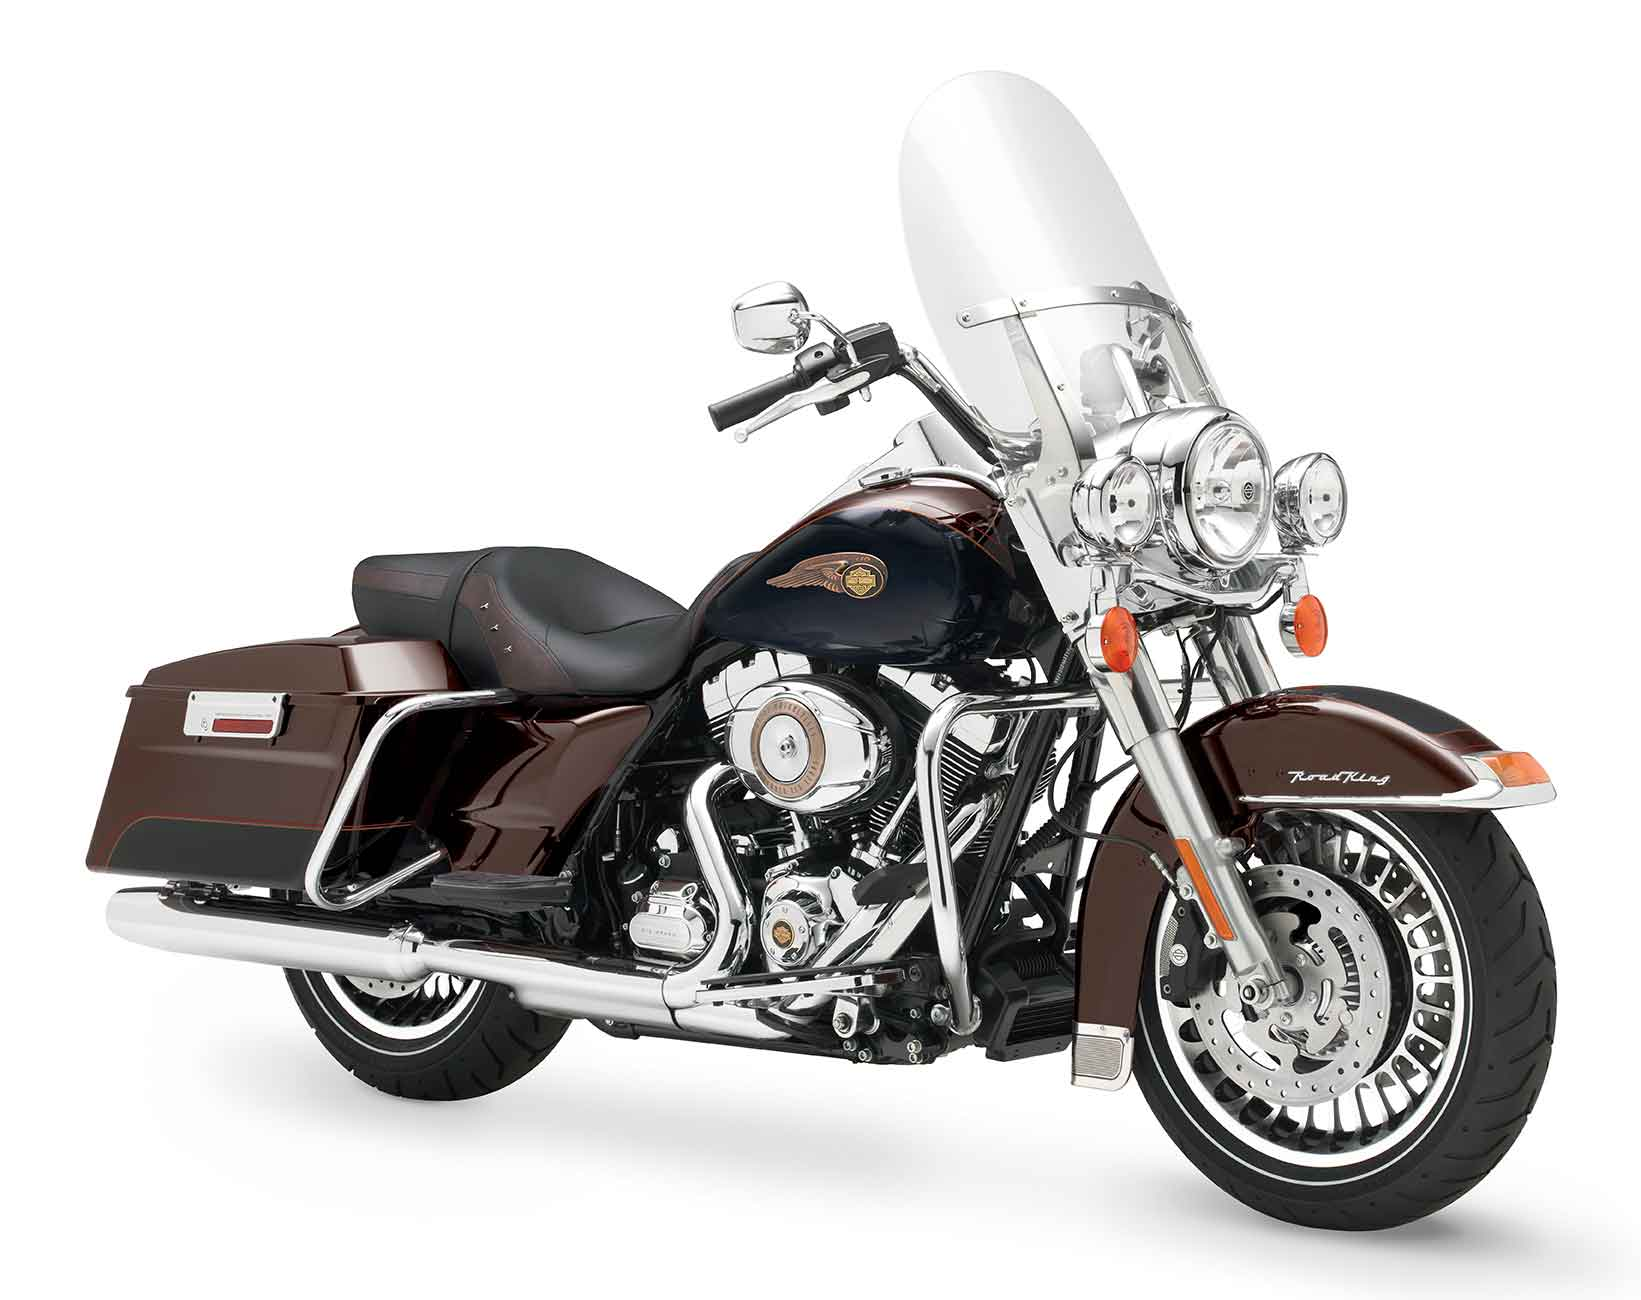 2012 heritage softail classic owners manual